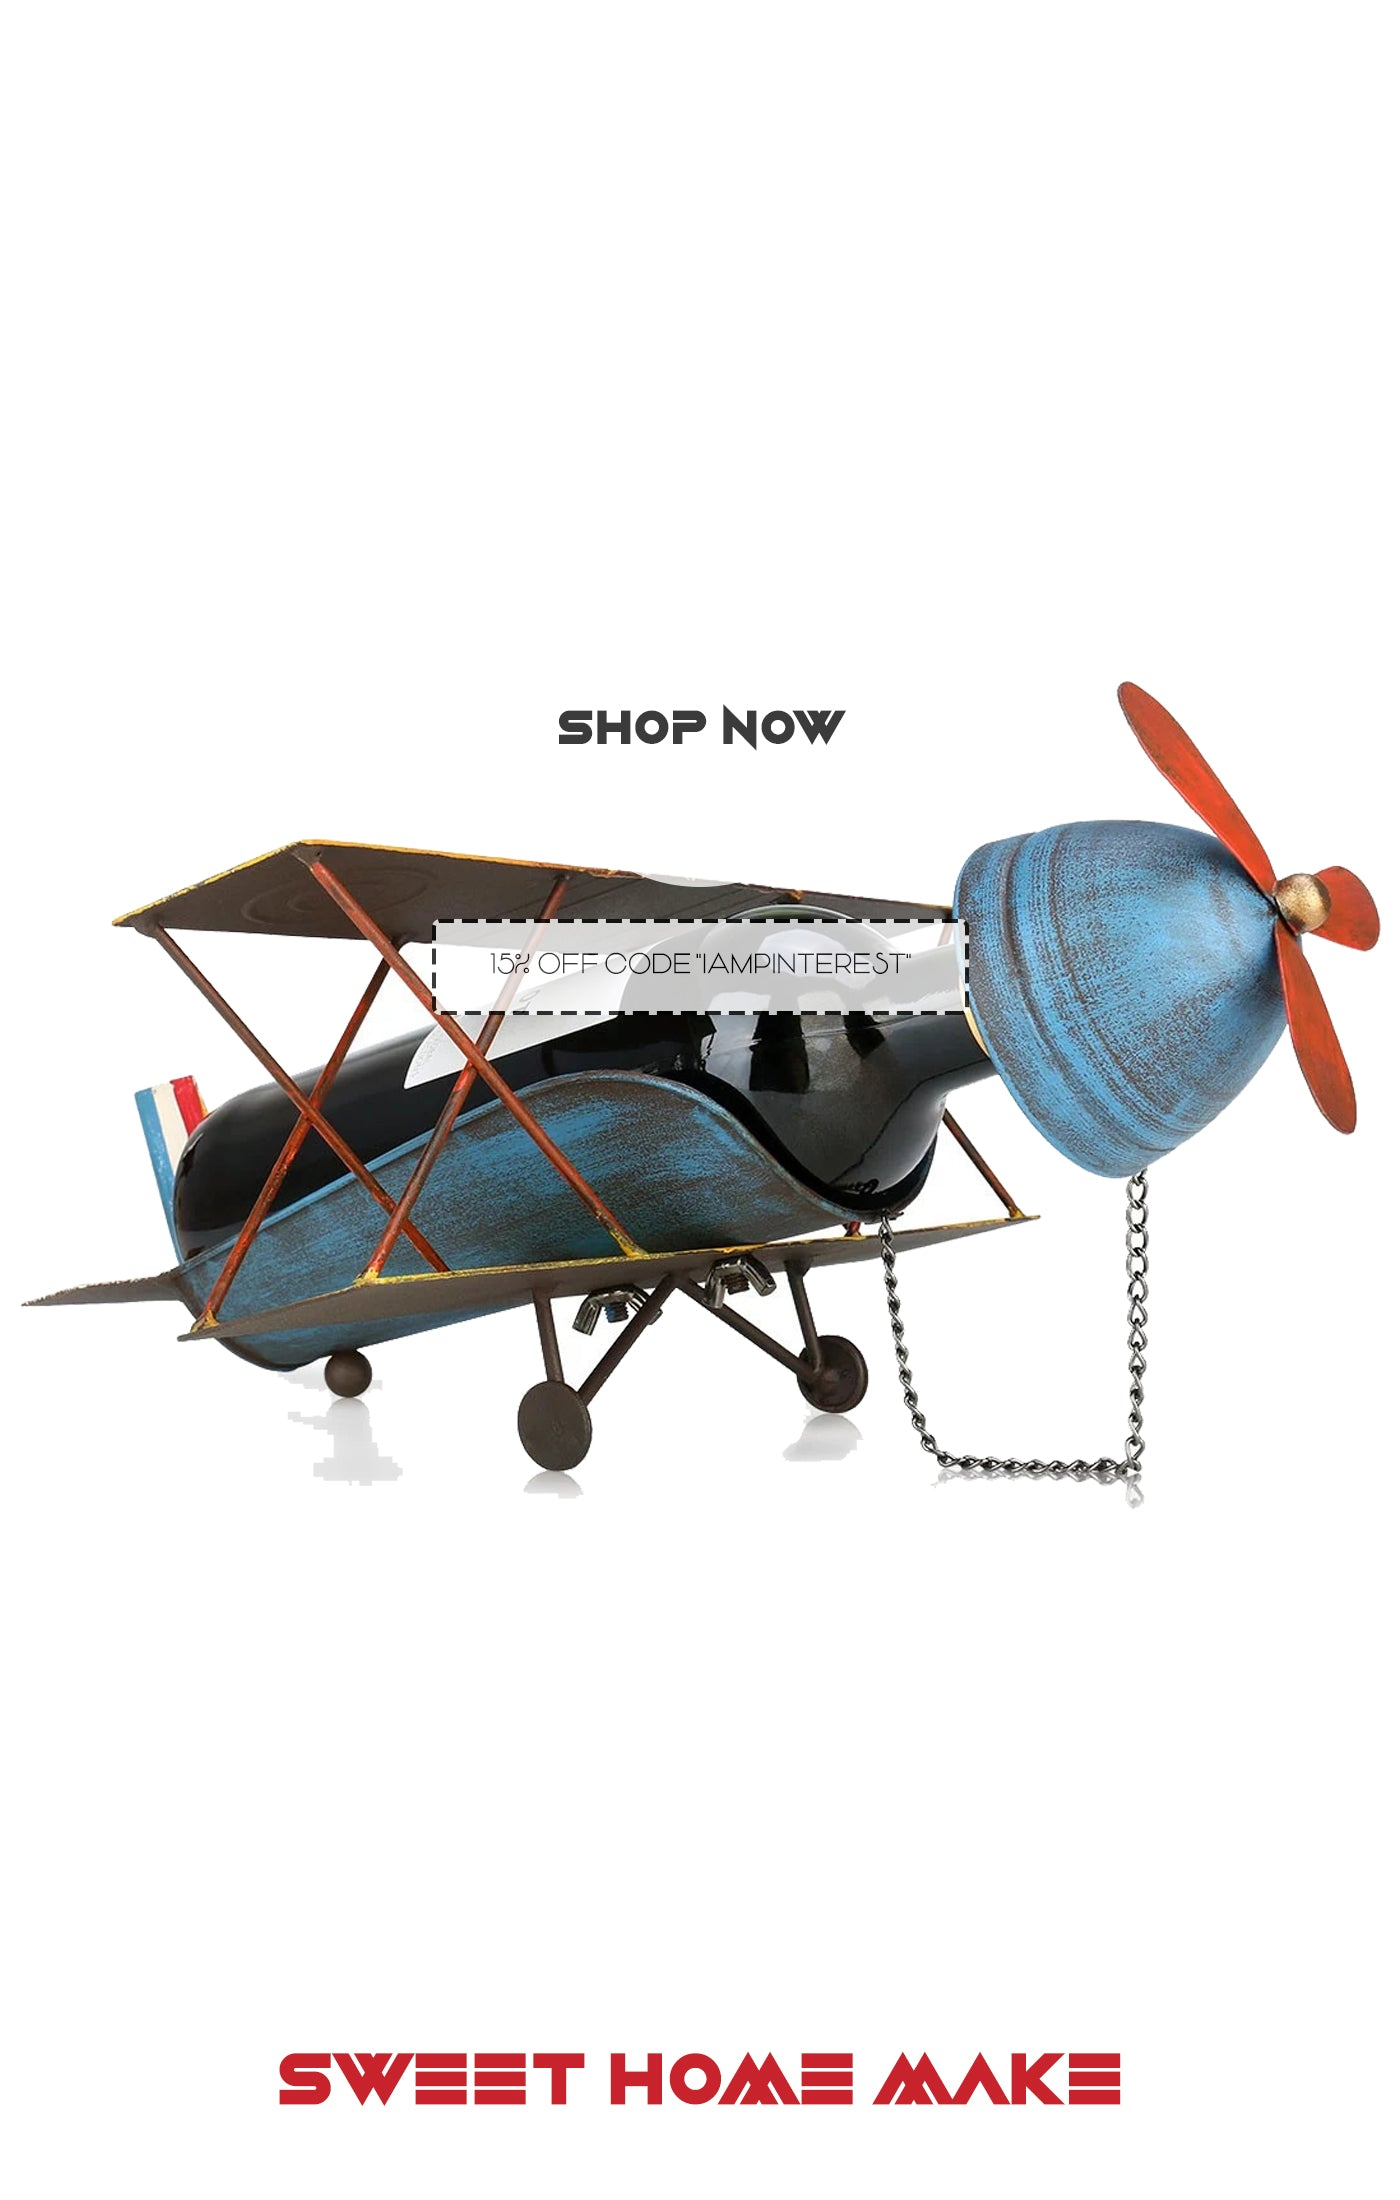 Gifts For Wine Lovers with Toy Airplanes